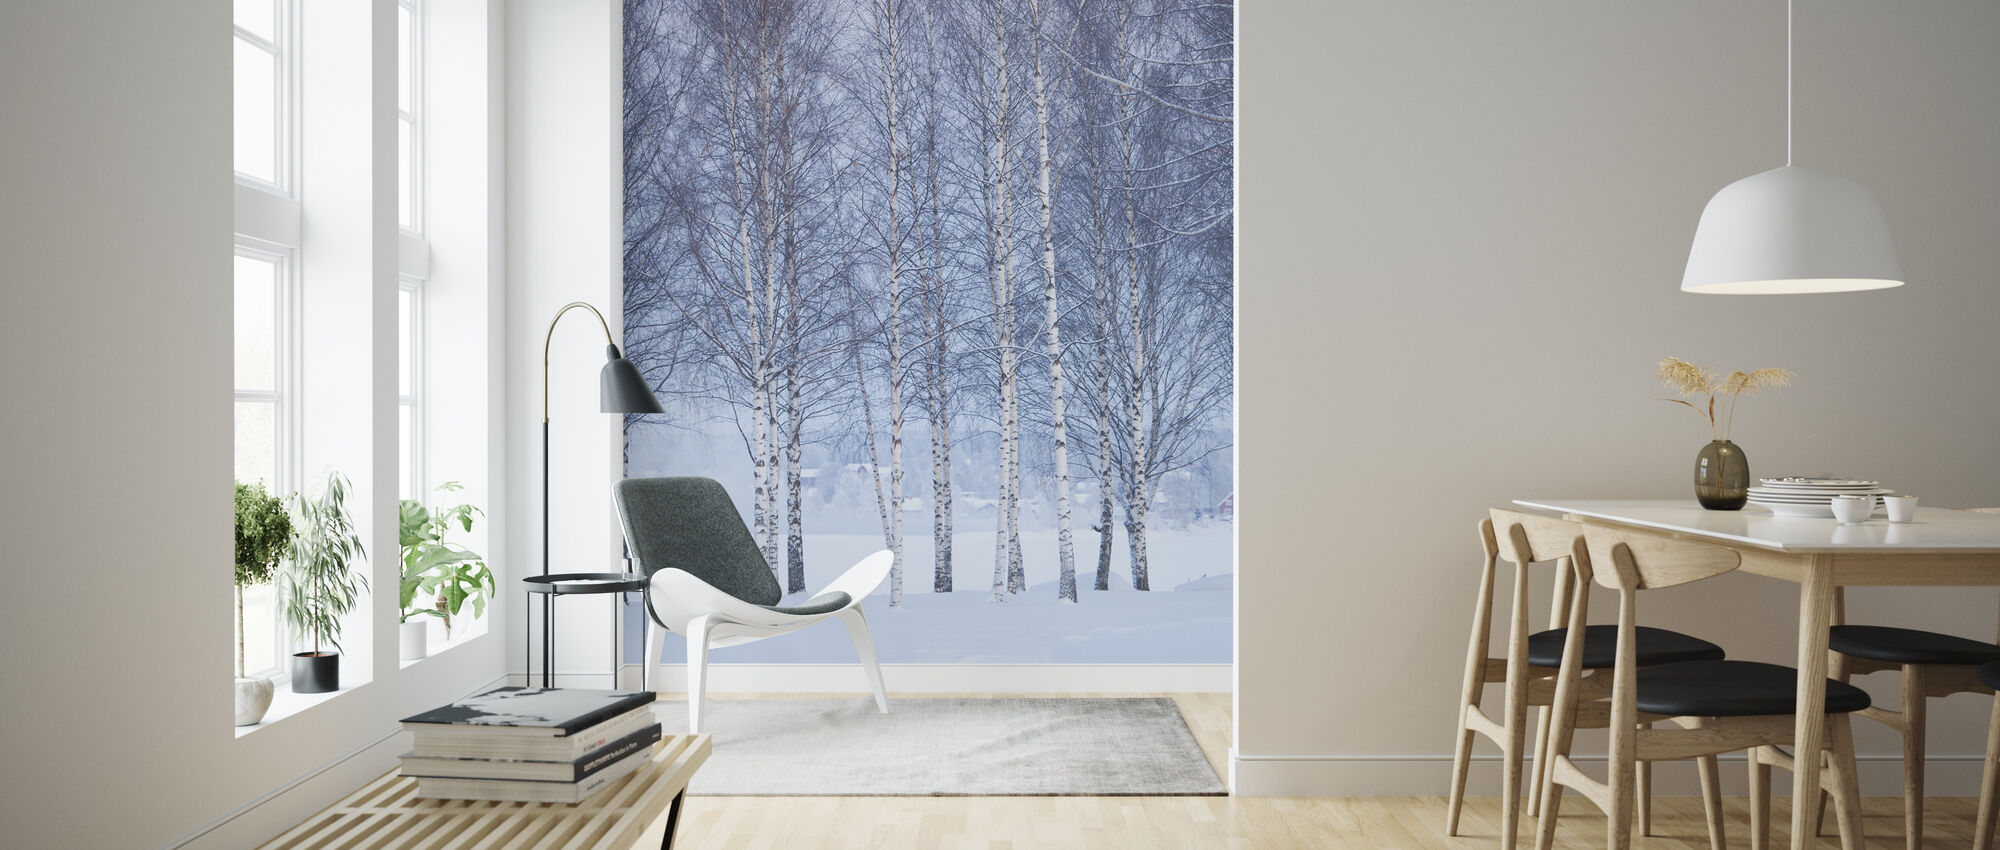 Winter Birch in Mora, Sweden - Wallpaper - Living Room